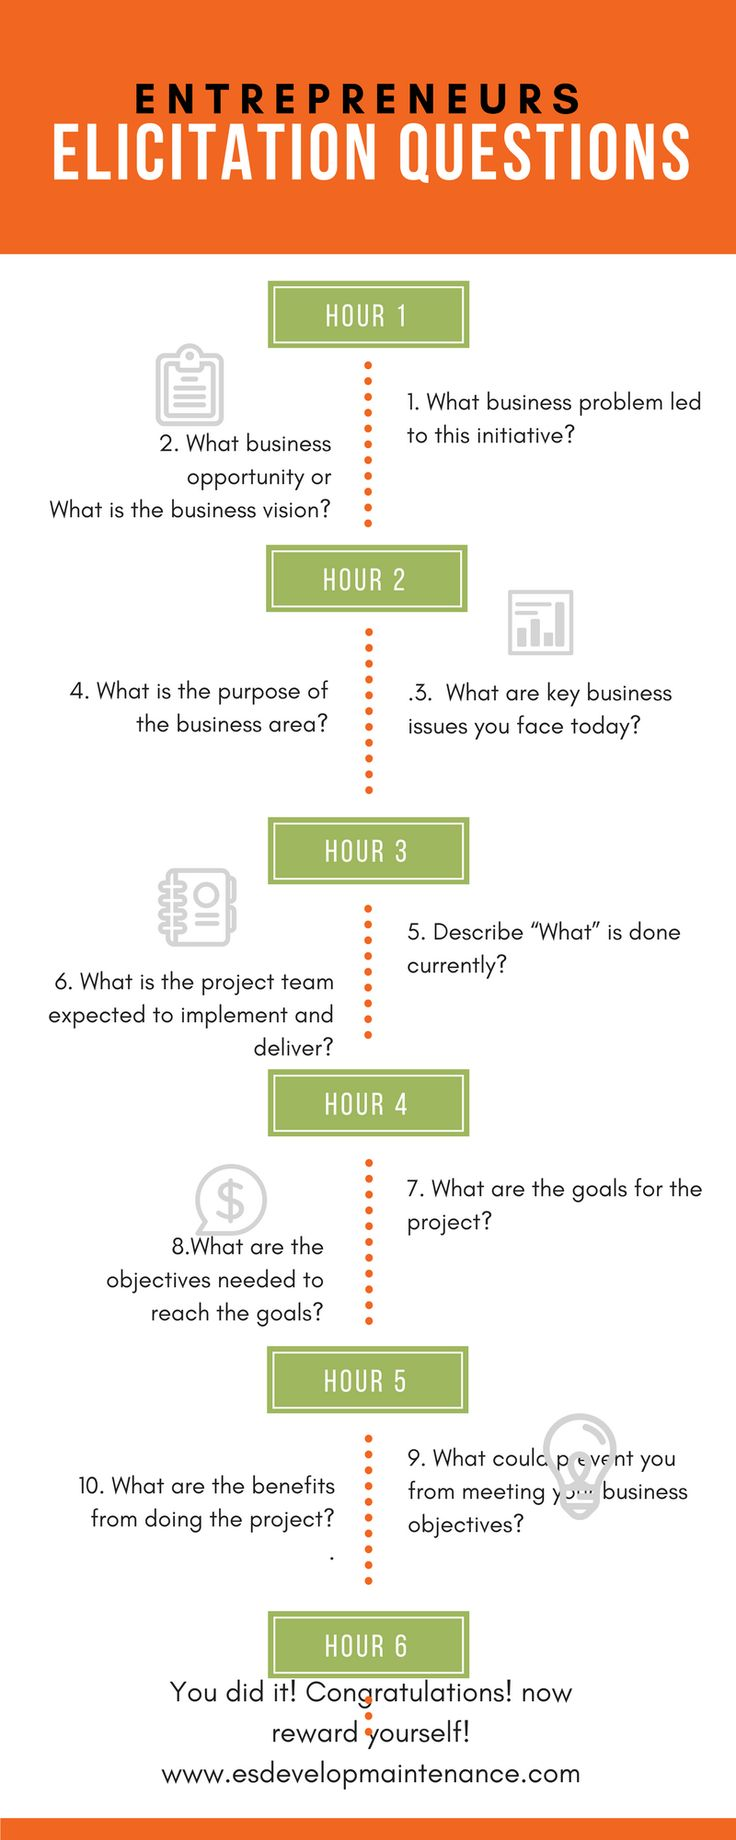 #Elicitation questions for #entrepreneurial skills and ideas - Learn how I made it to 100K in one months with e-commerce!